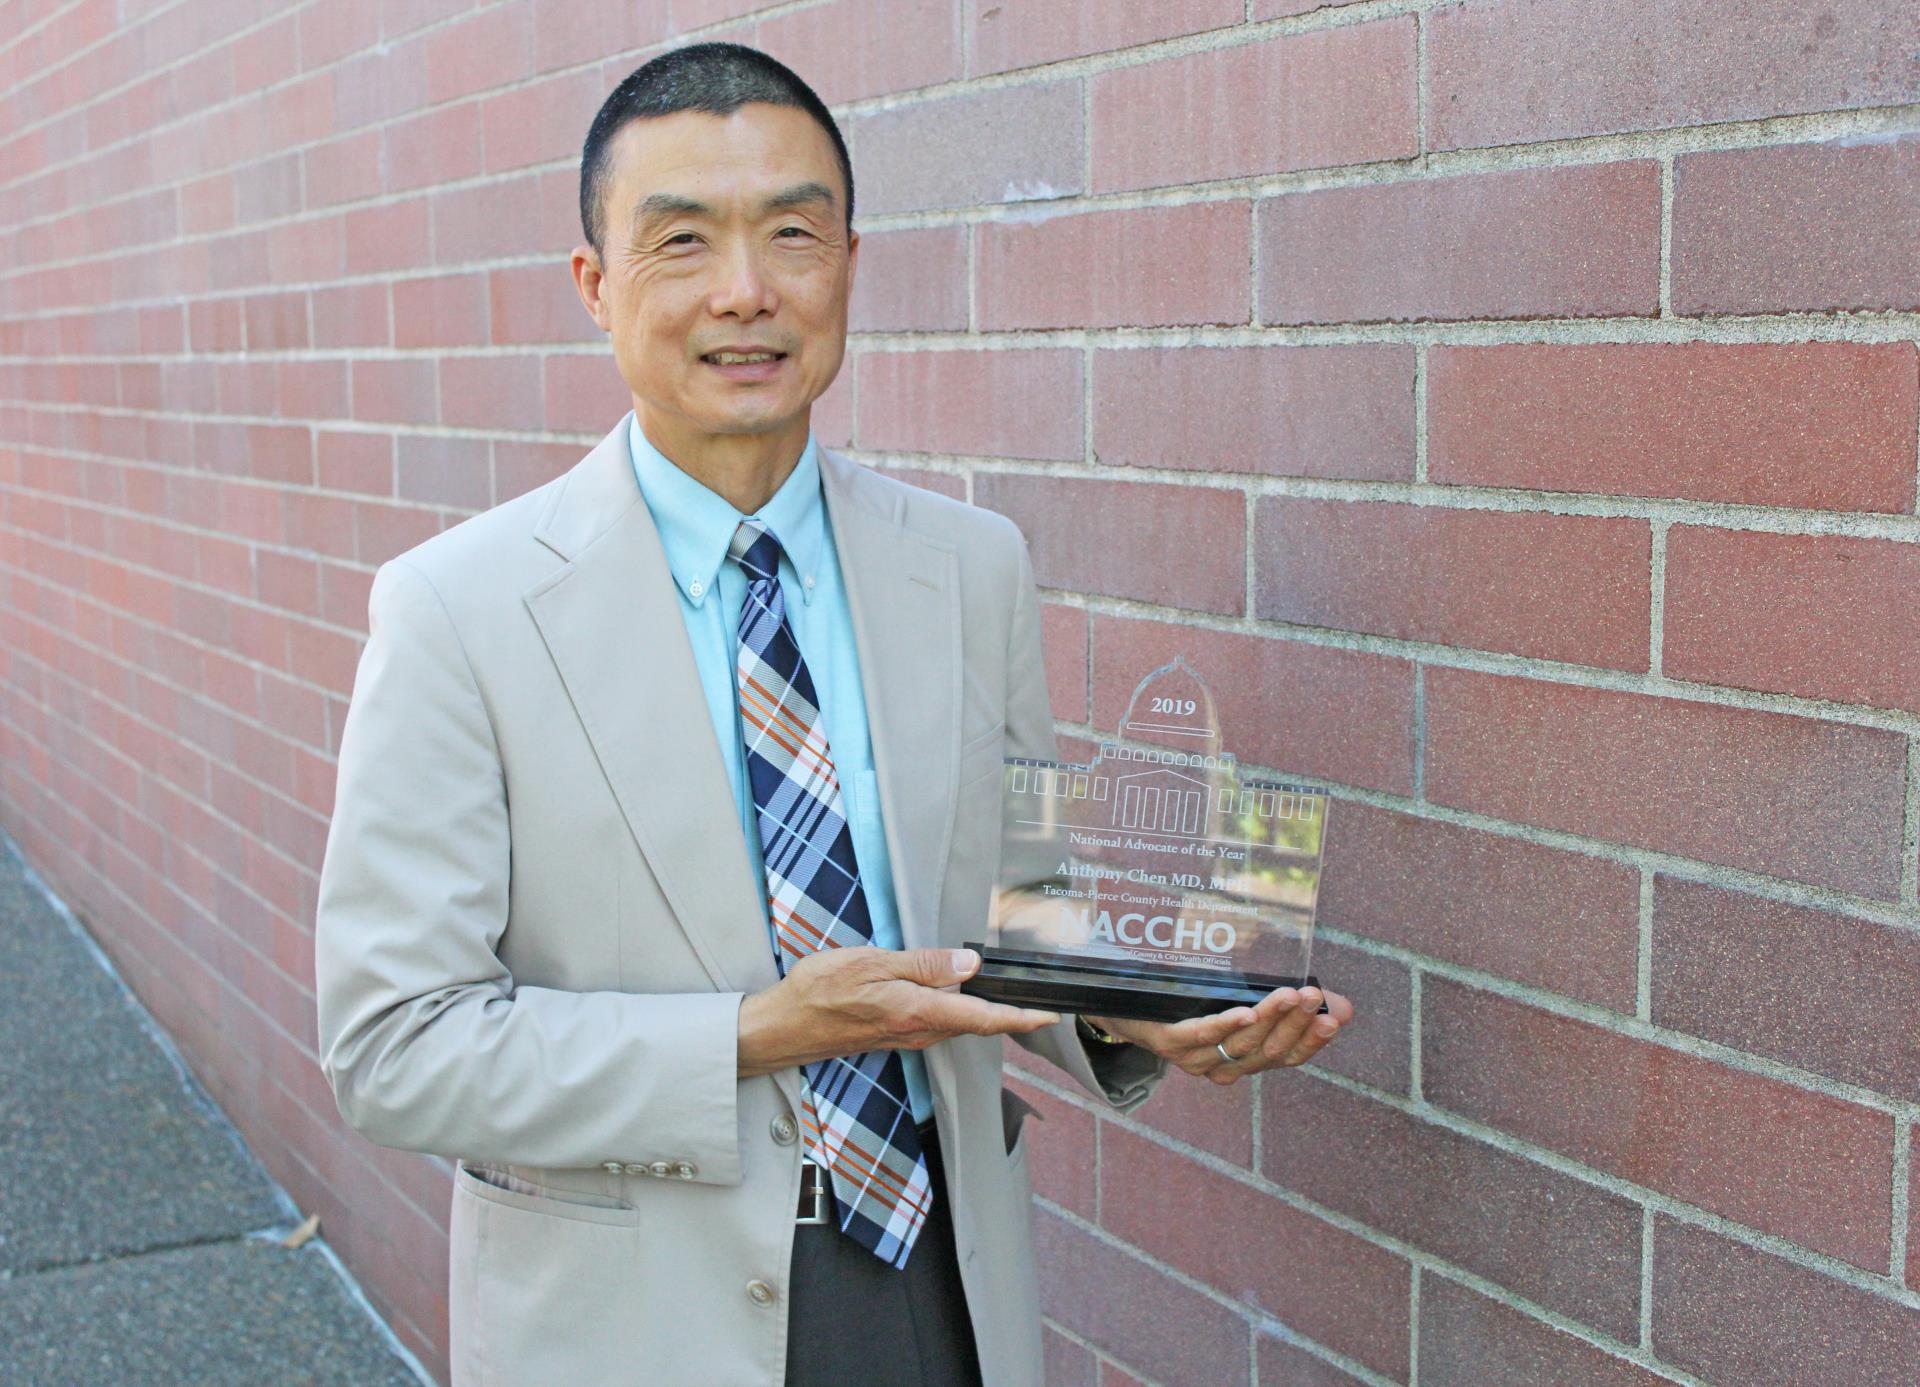 Dr. Chen with 2019 NACCHO Advocate of the Year Award